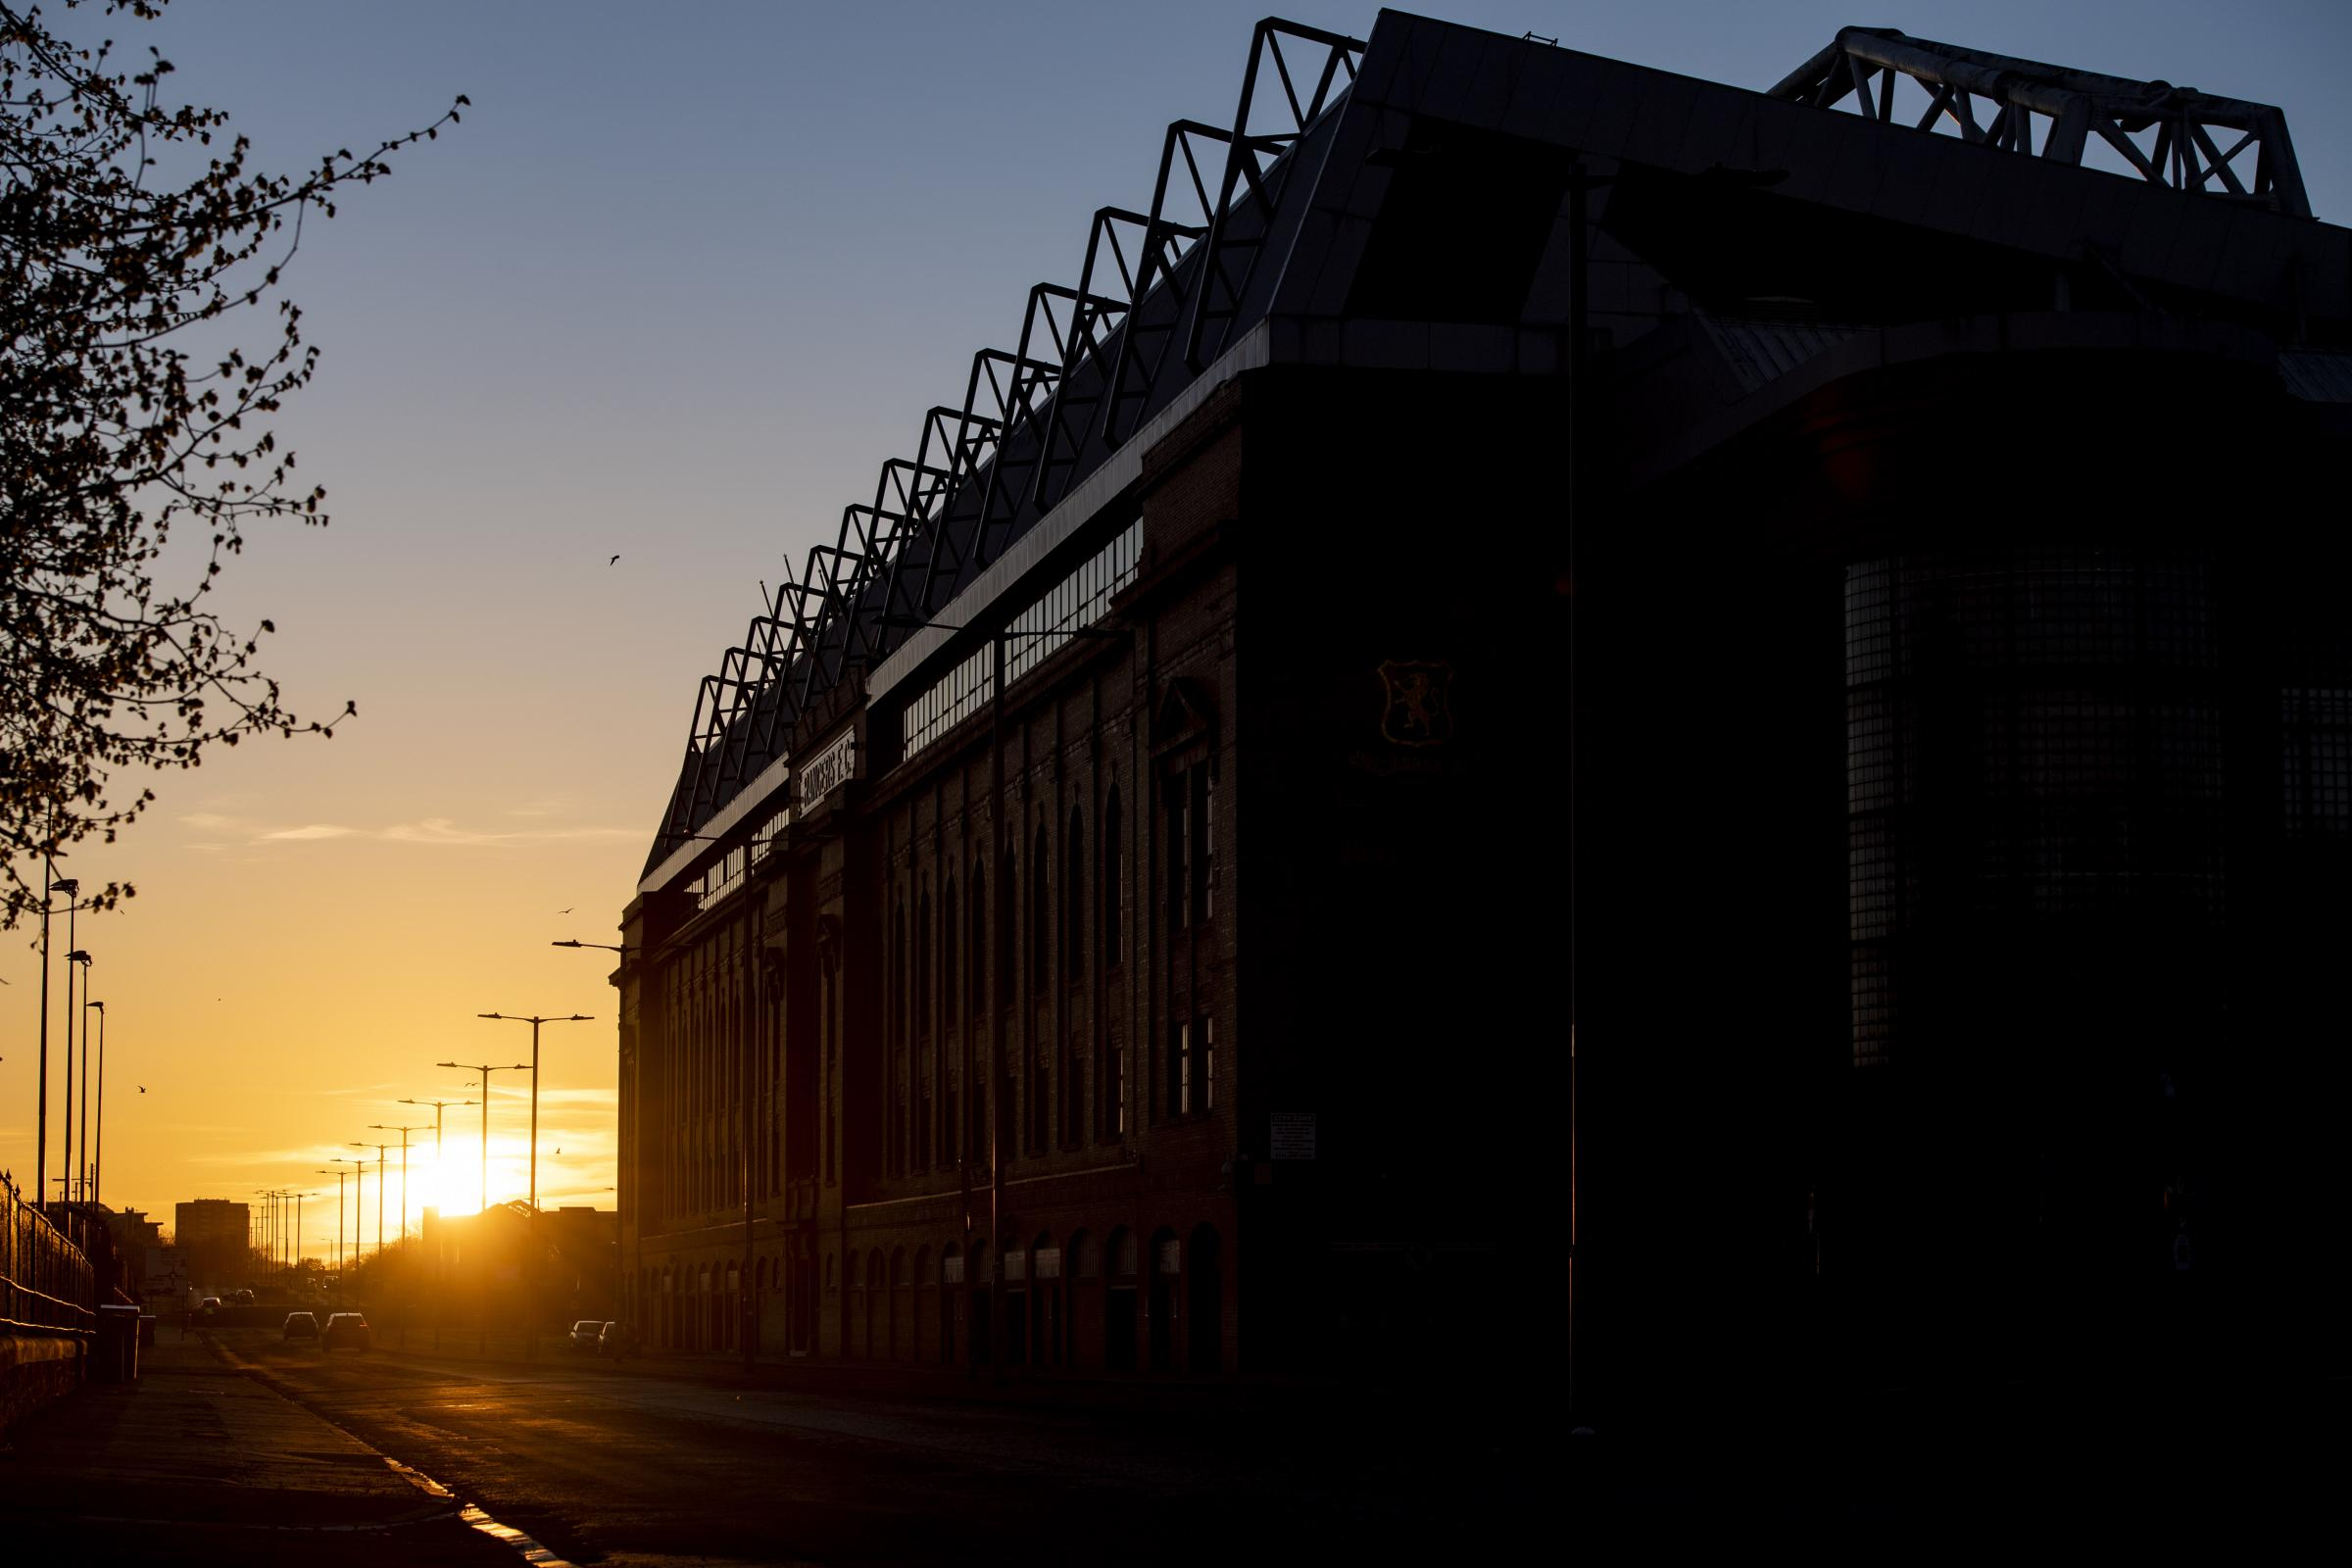 Sell-out crowds are back at Ibrox - but a longed-for Champions League return will have to wait for flat Rangers